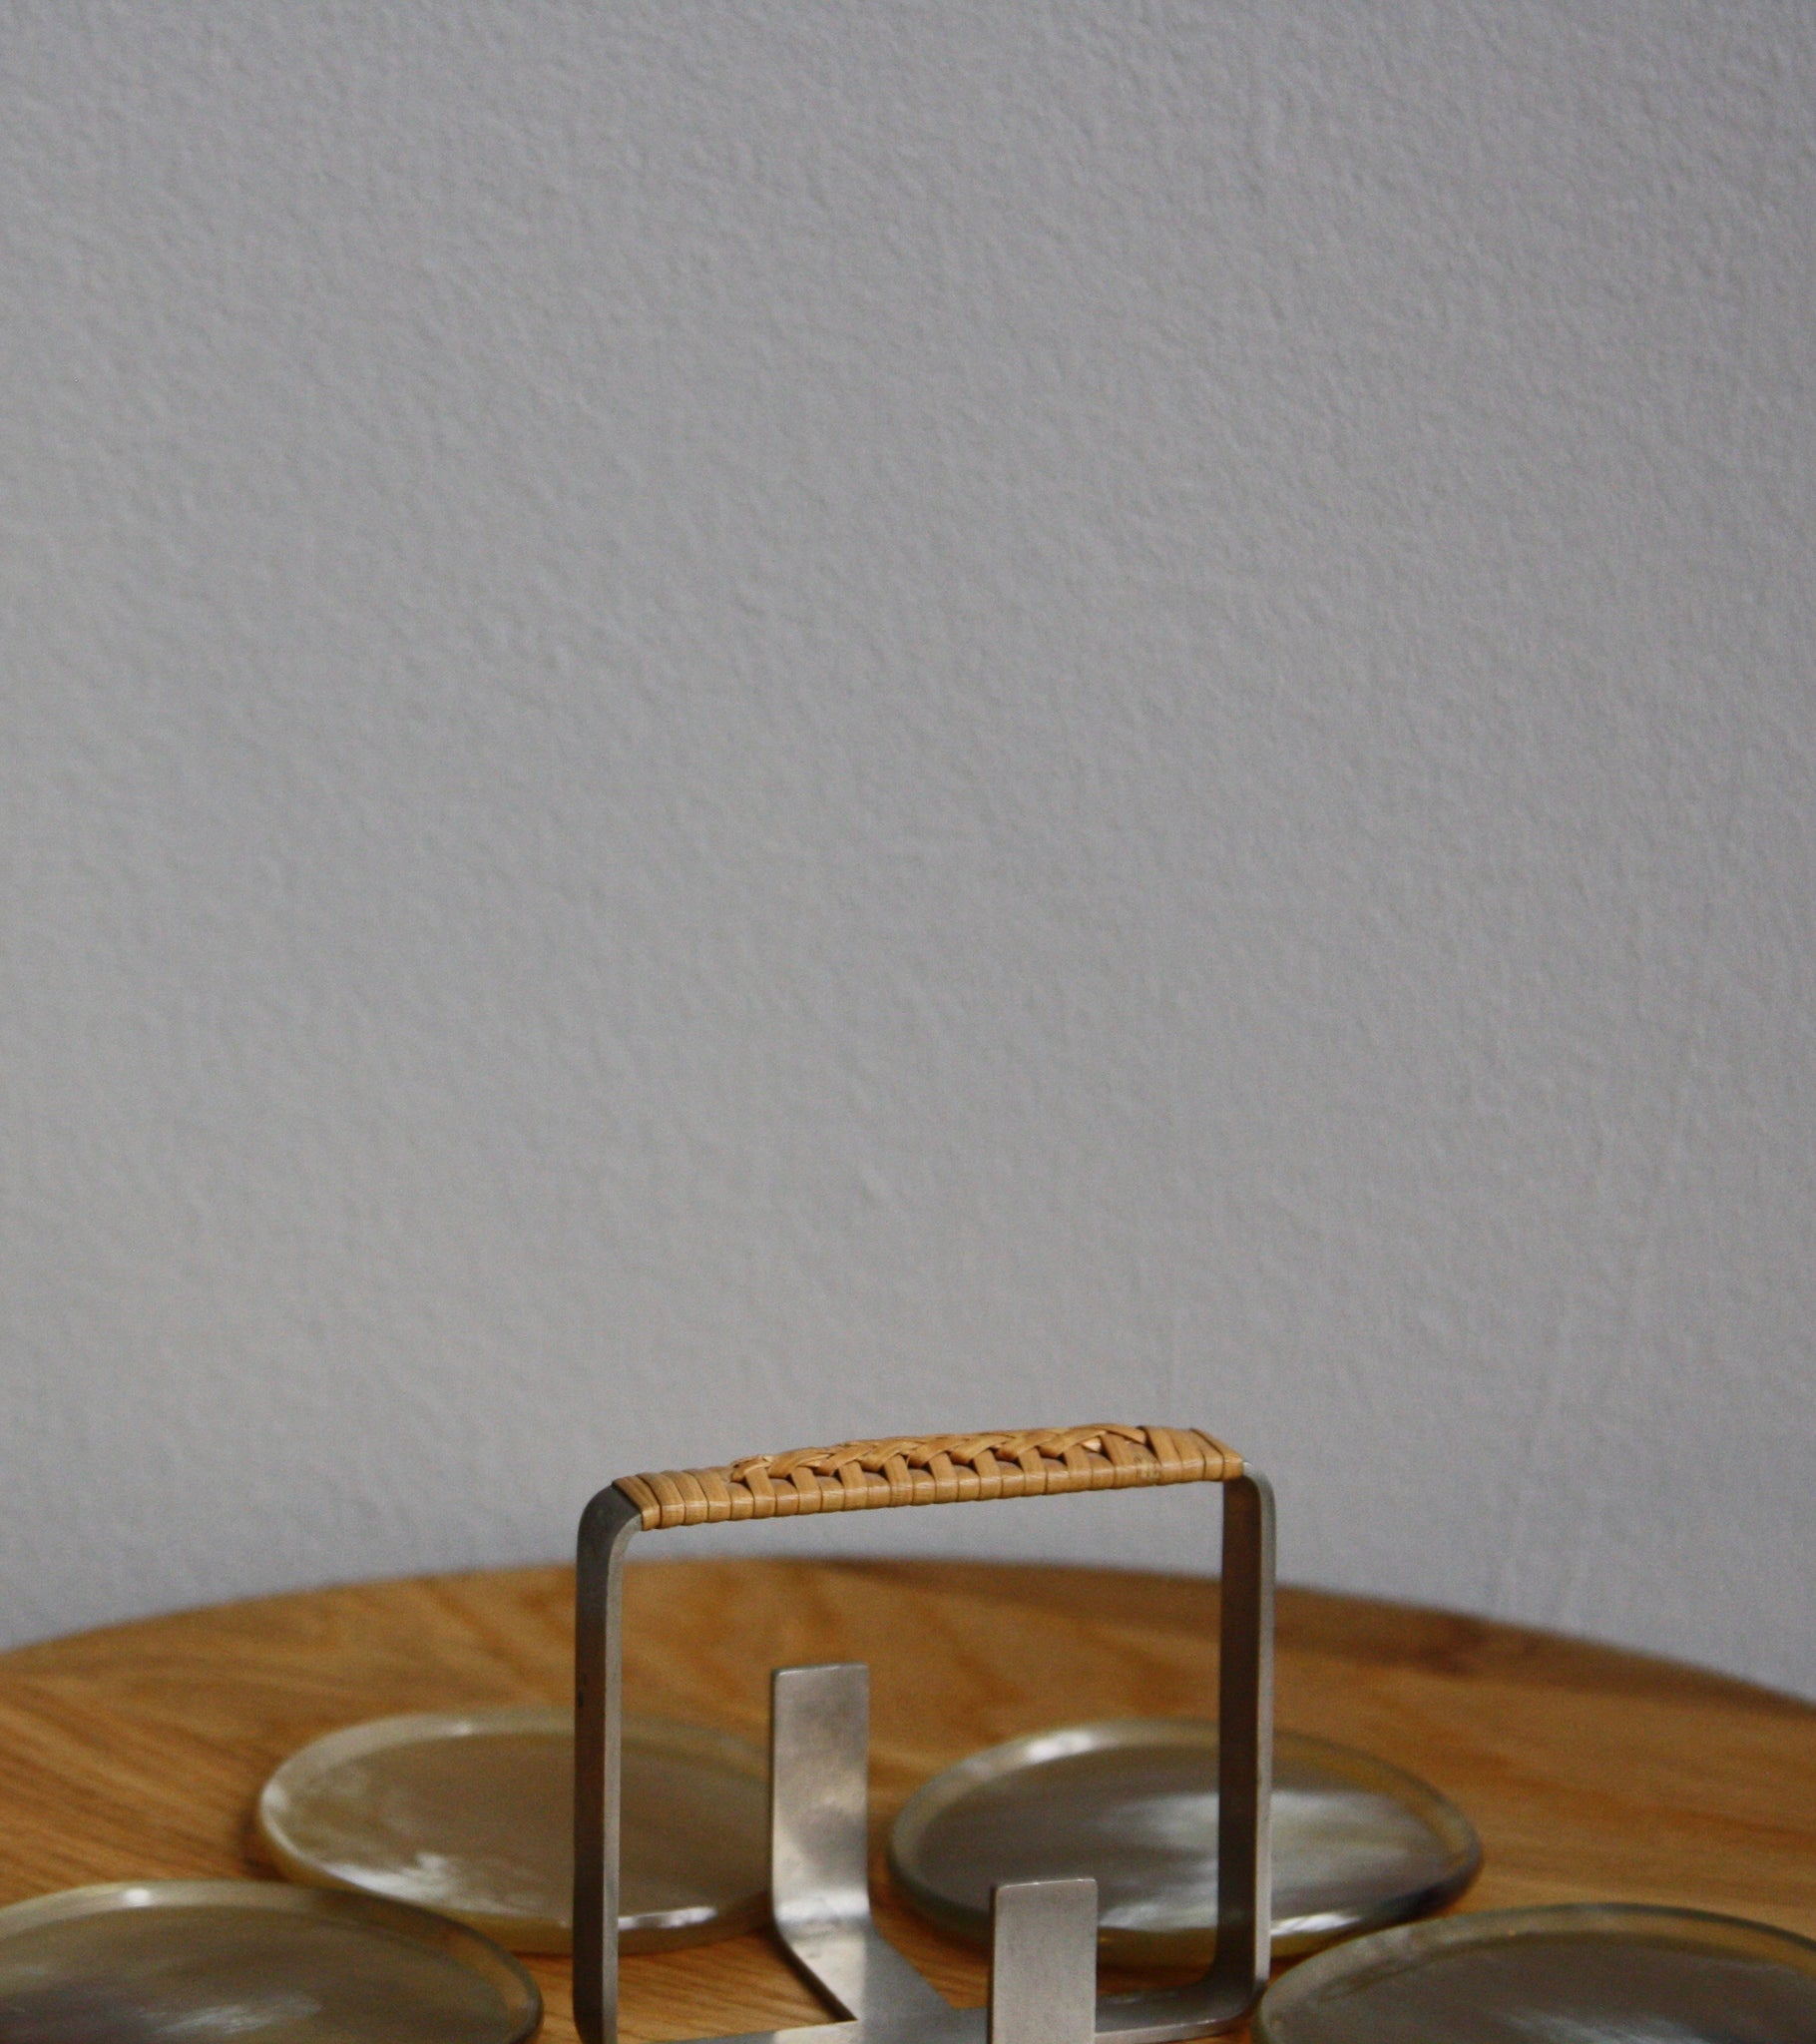 Horn Coasters in Holder Carl Auböck